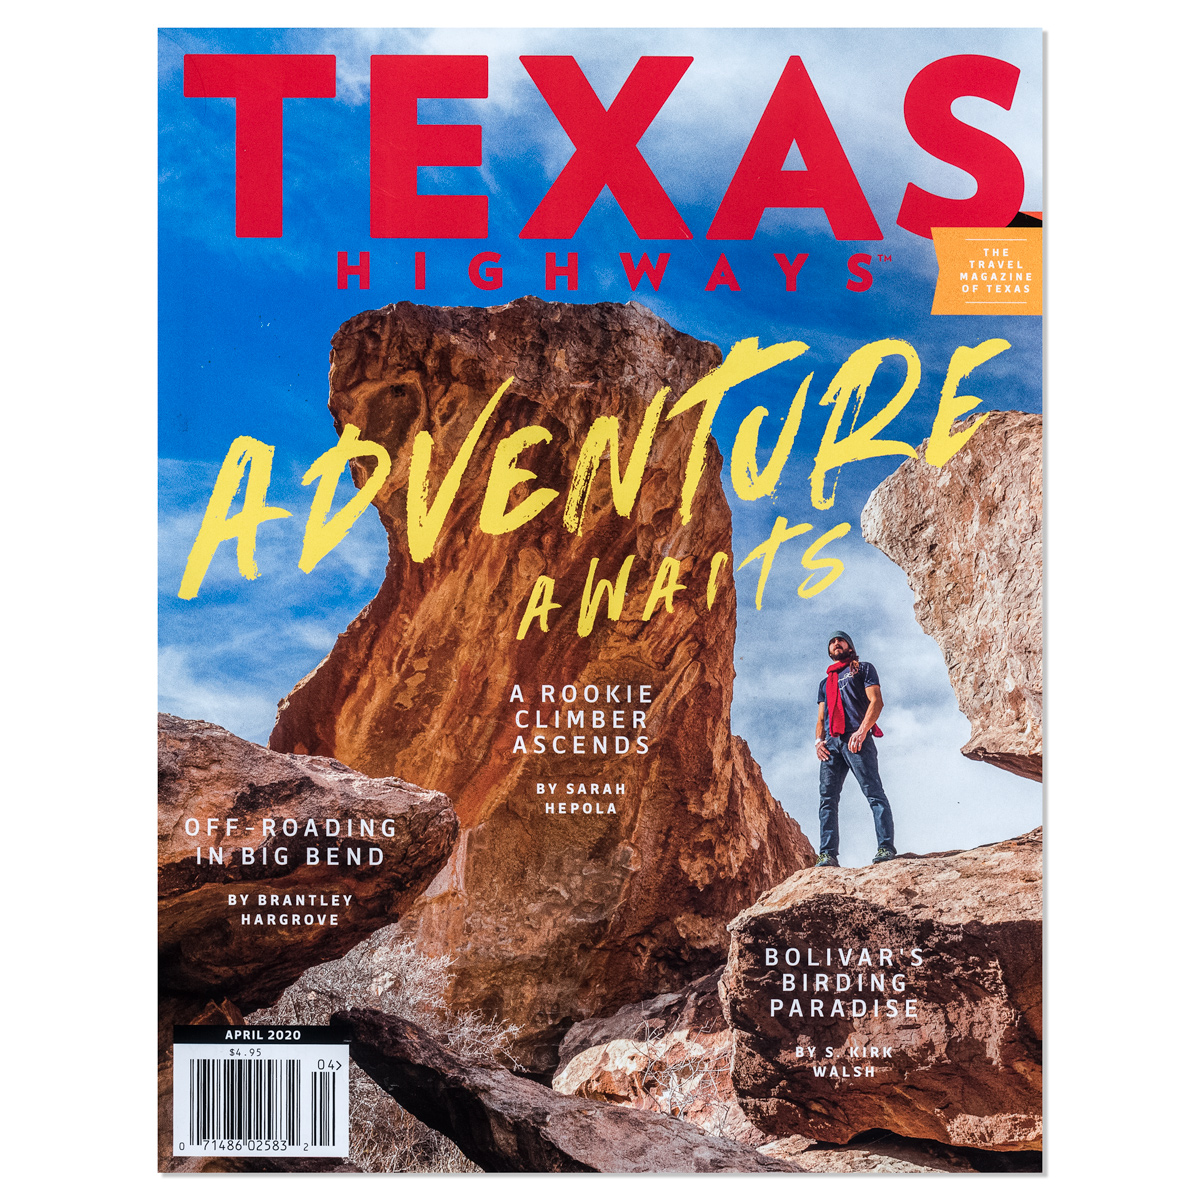 Texas Highways Cover Story - Hueco Tanks